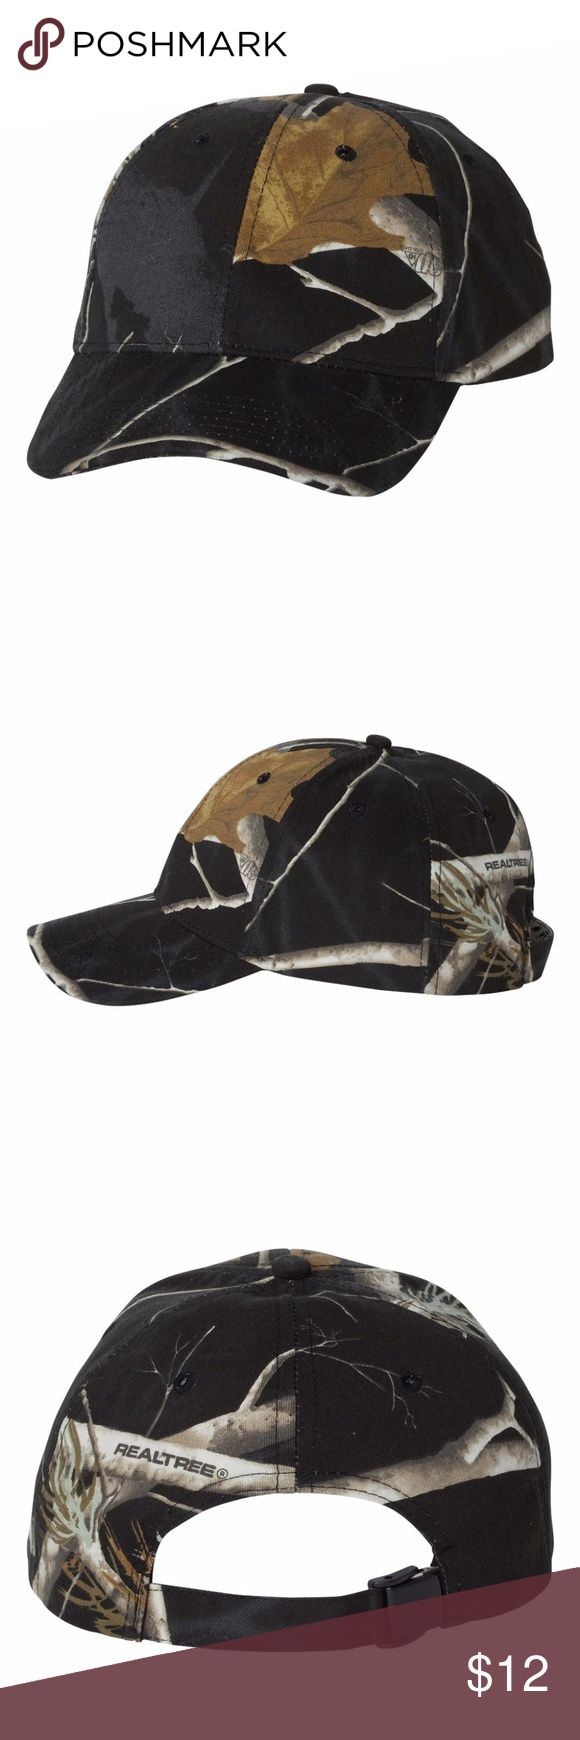 Real Tree Camouflage Adjustable Hat NEW by Kati Brushed cotton/polyester blend Blaze is 100% polyester Structured, six-panel, mid-profile Pre-curved visor with matching undervisor Sewn eyelets Self-fabric Flex-Strap closure Real Tree Camouflage Adjustable Hat Realtree by Kati Accessories Hats